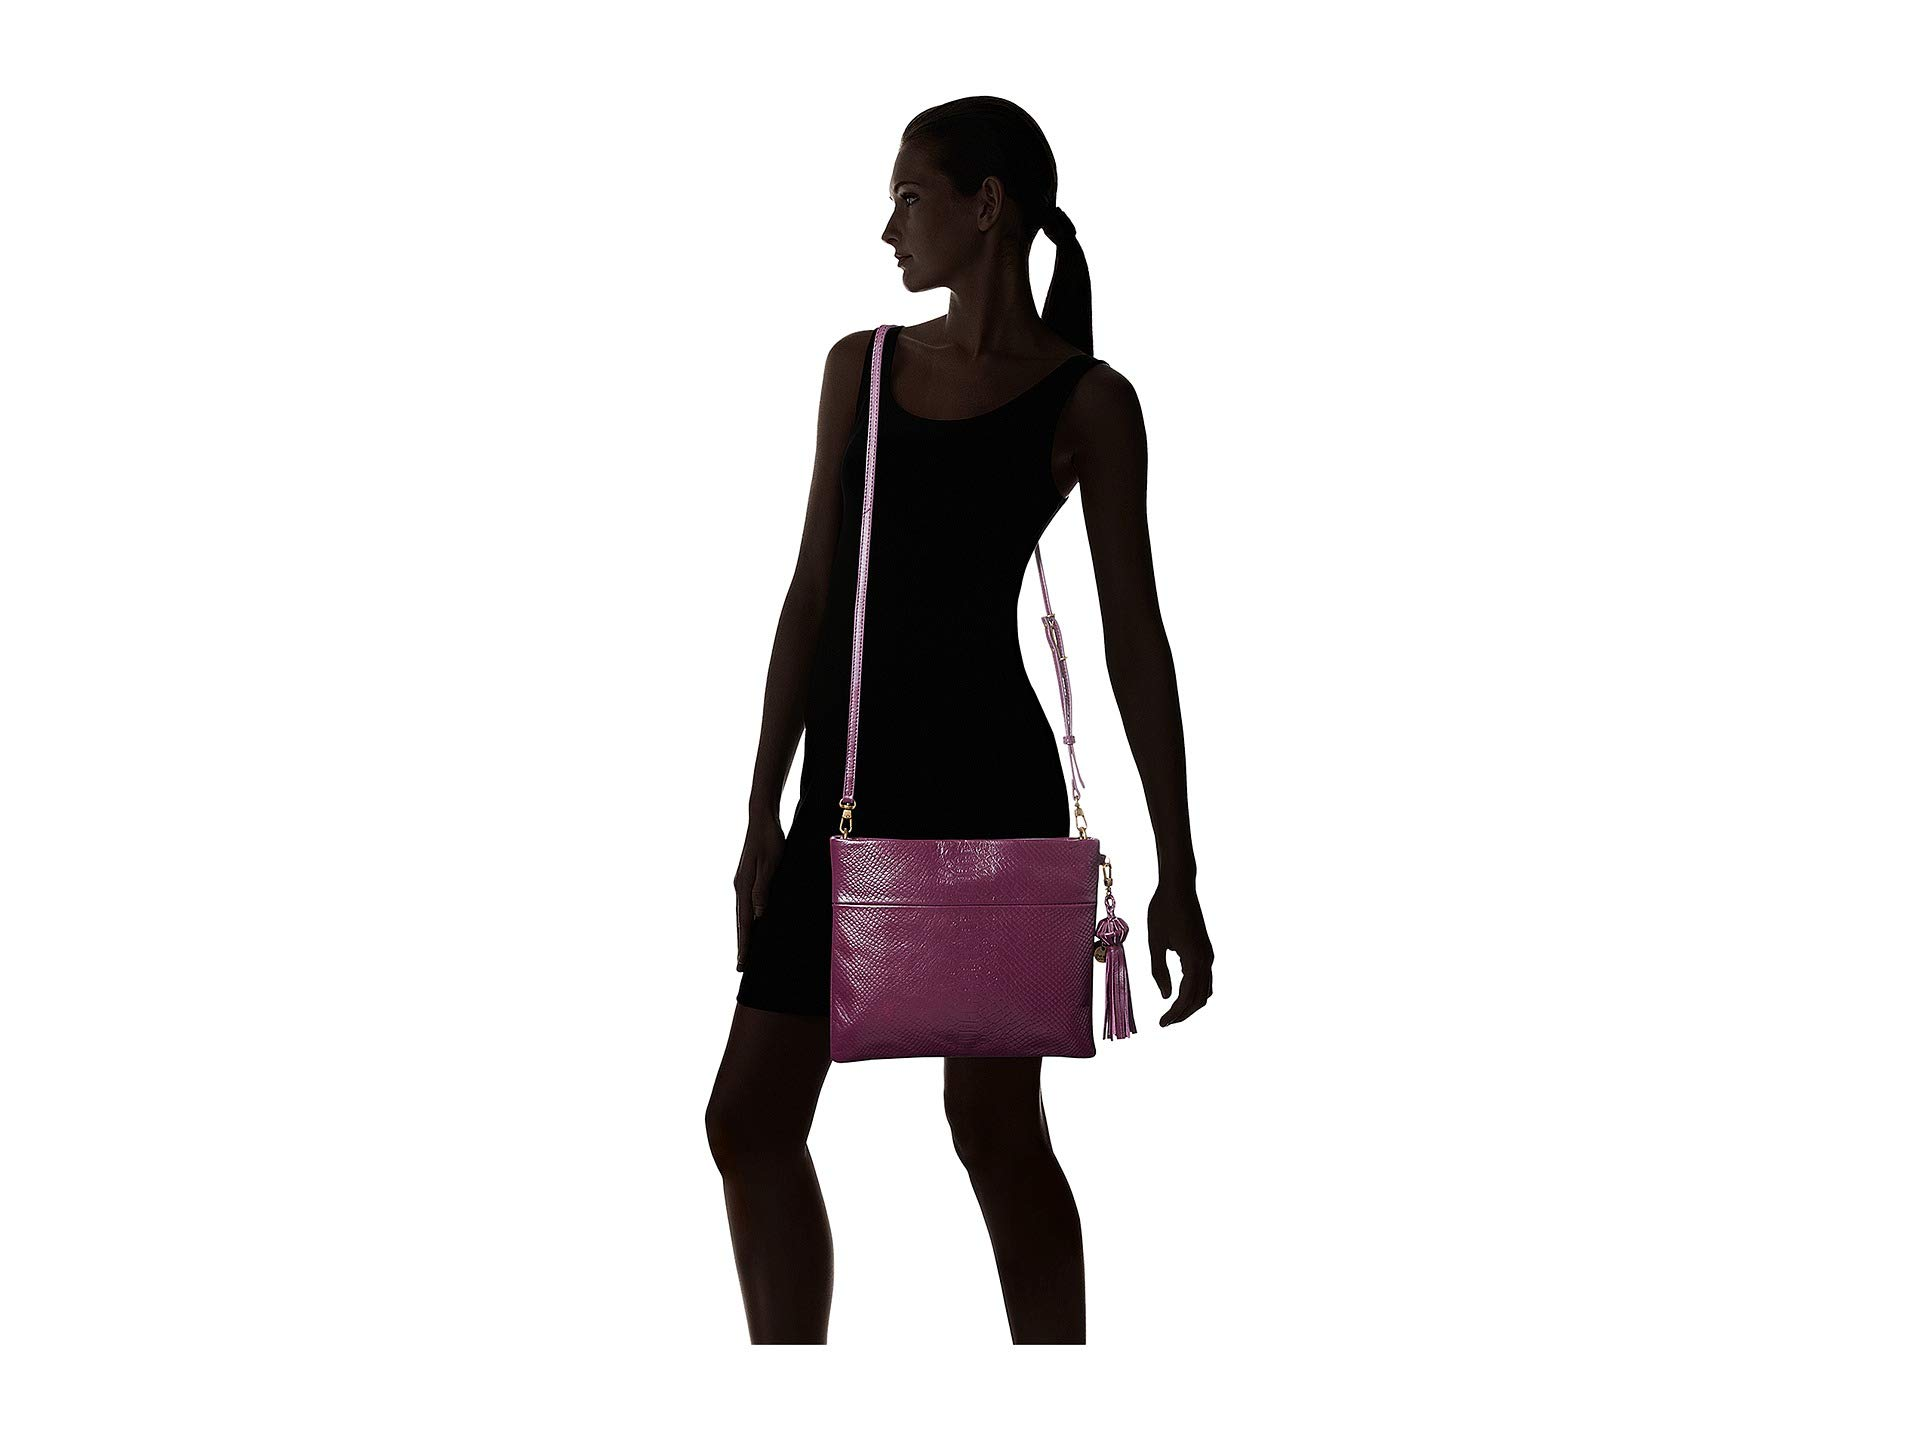 By Convertible Sak The Exotic Violet Clutch Collective Tomboy w1dEqI